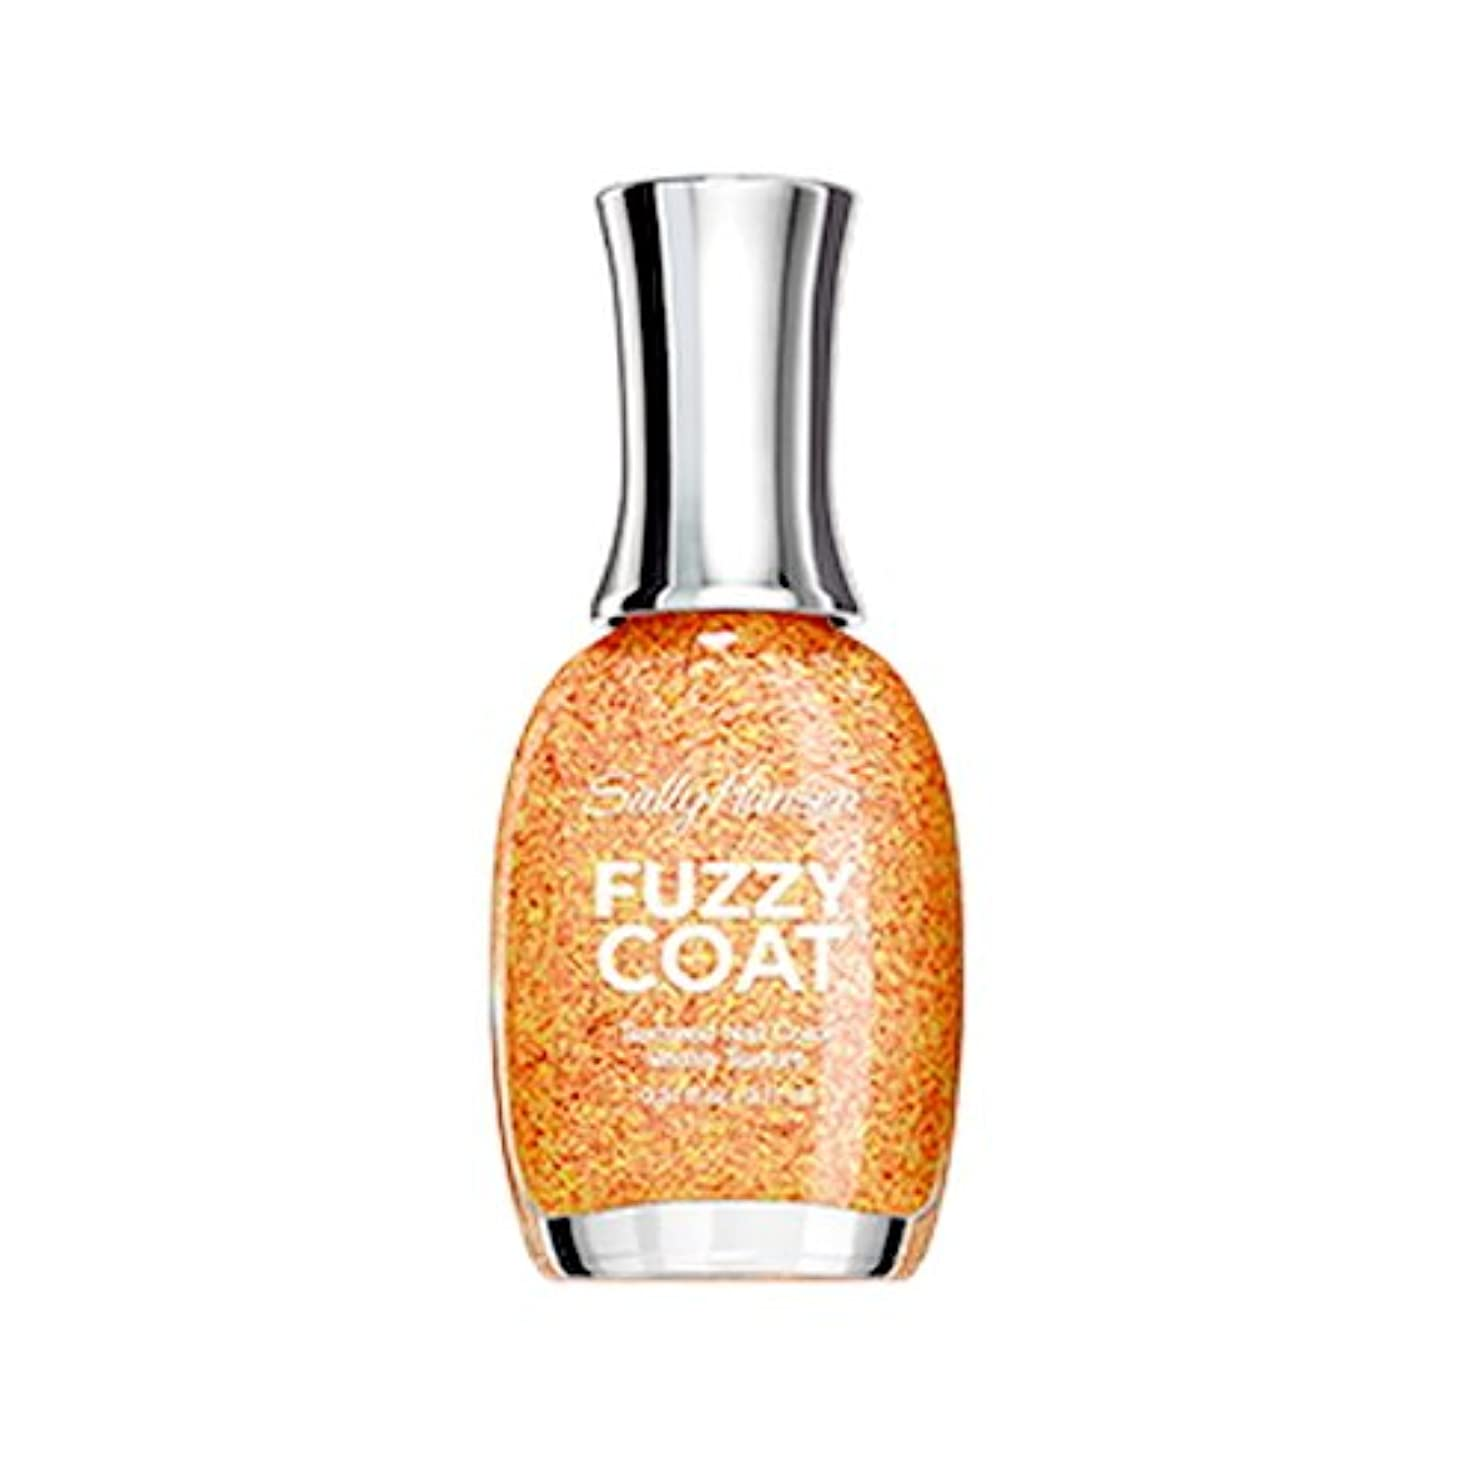 リブ分散リーダーシップSALLY HANSEN Fuzzy Coat Special Effect Textured Nail Color - Peach Fuzz (並行輸入品)